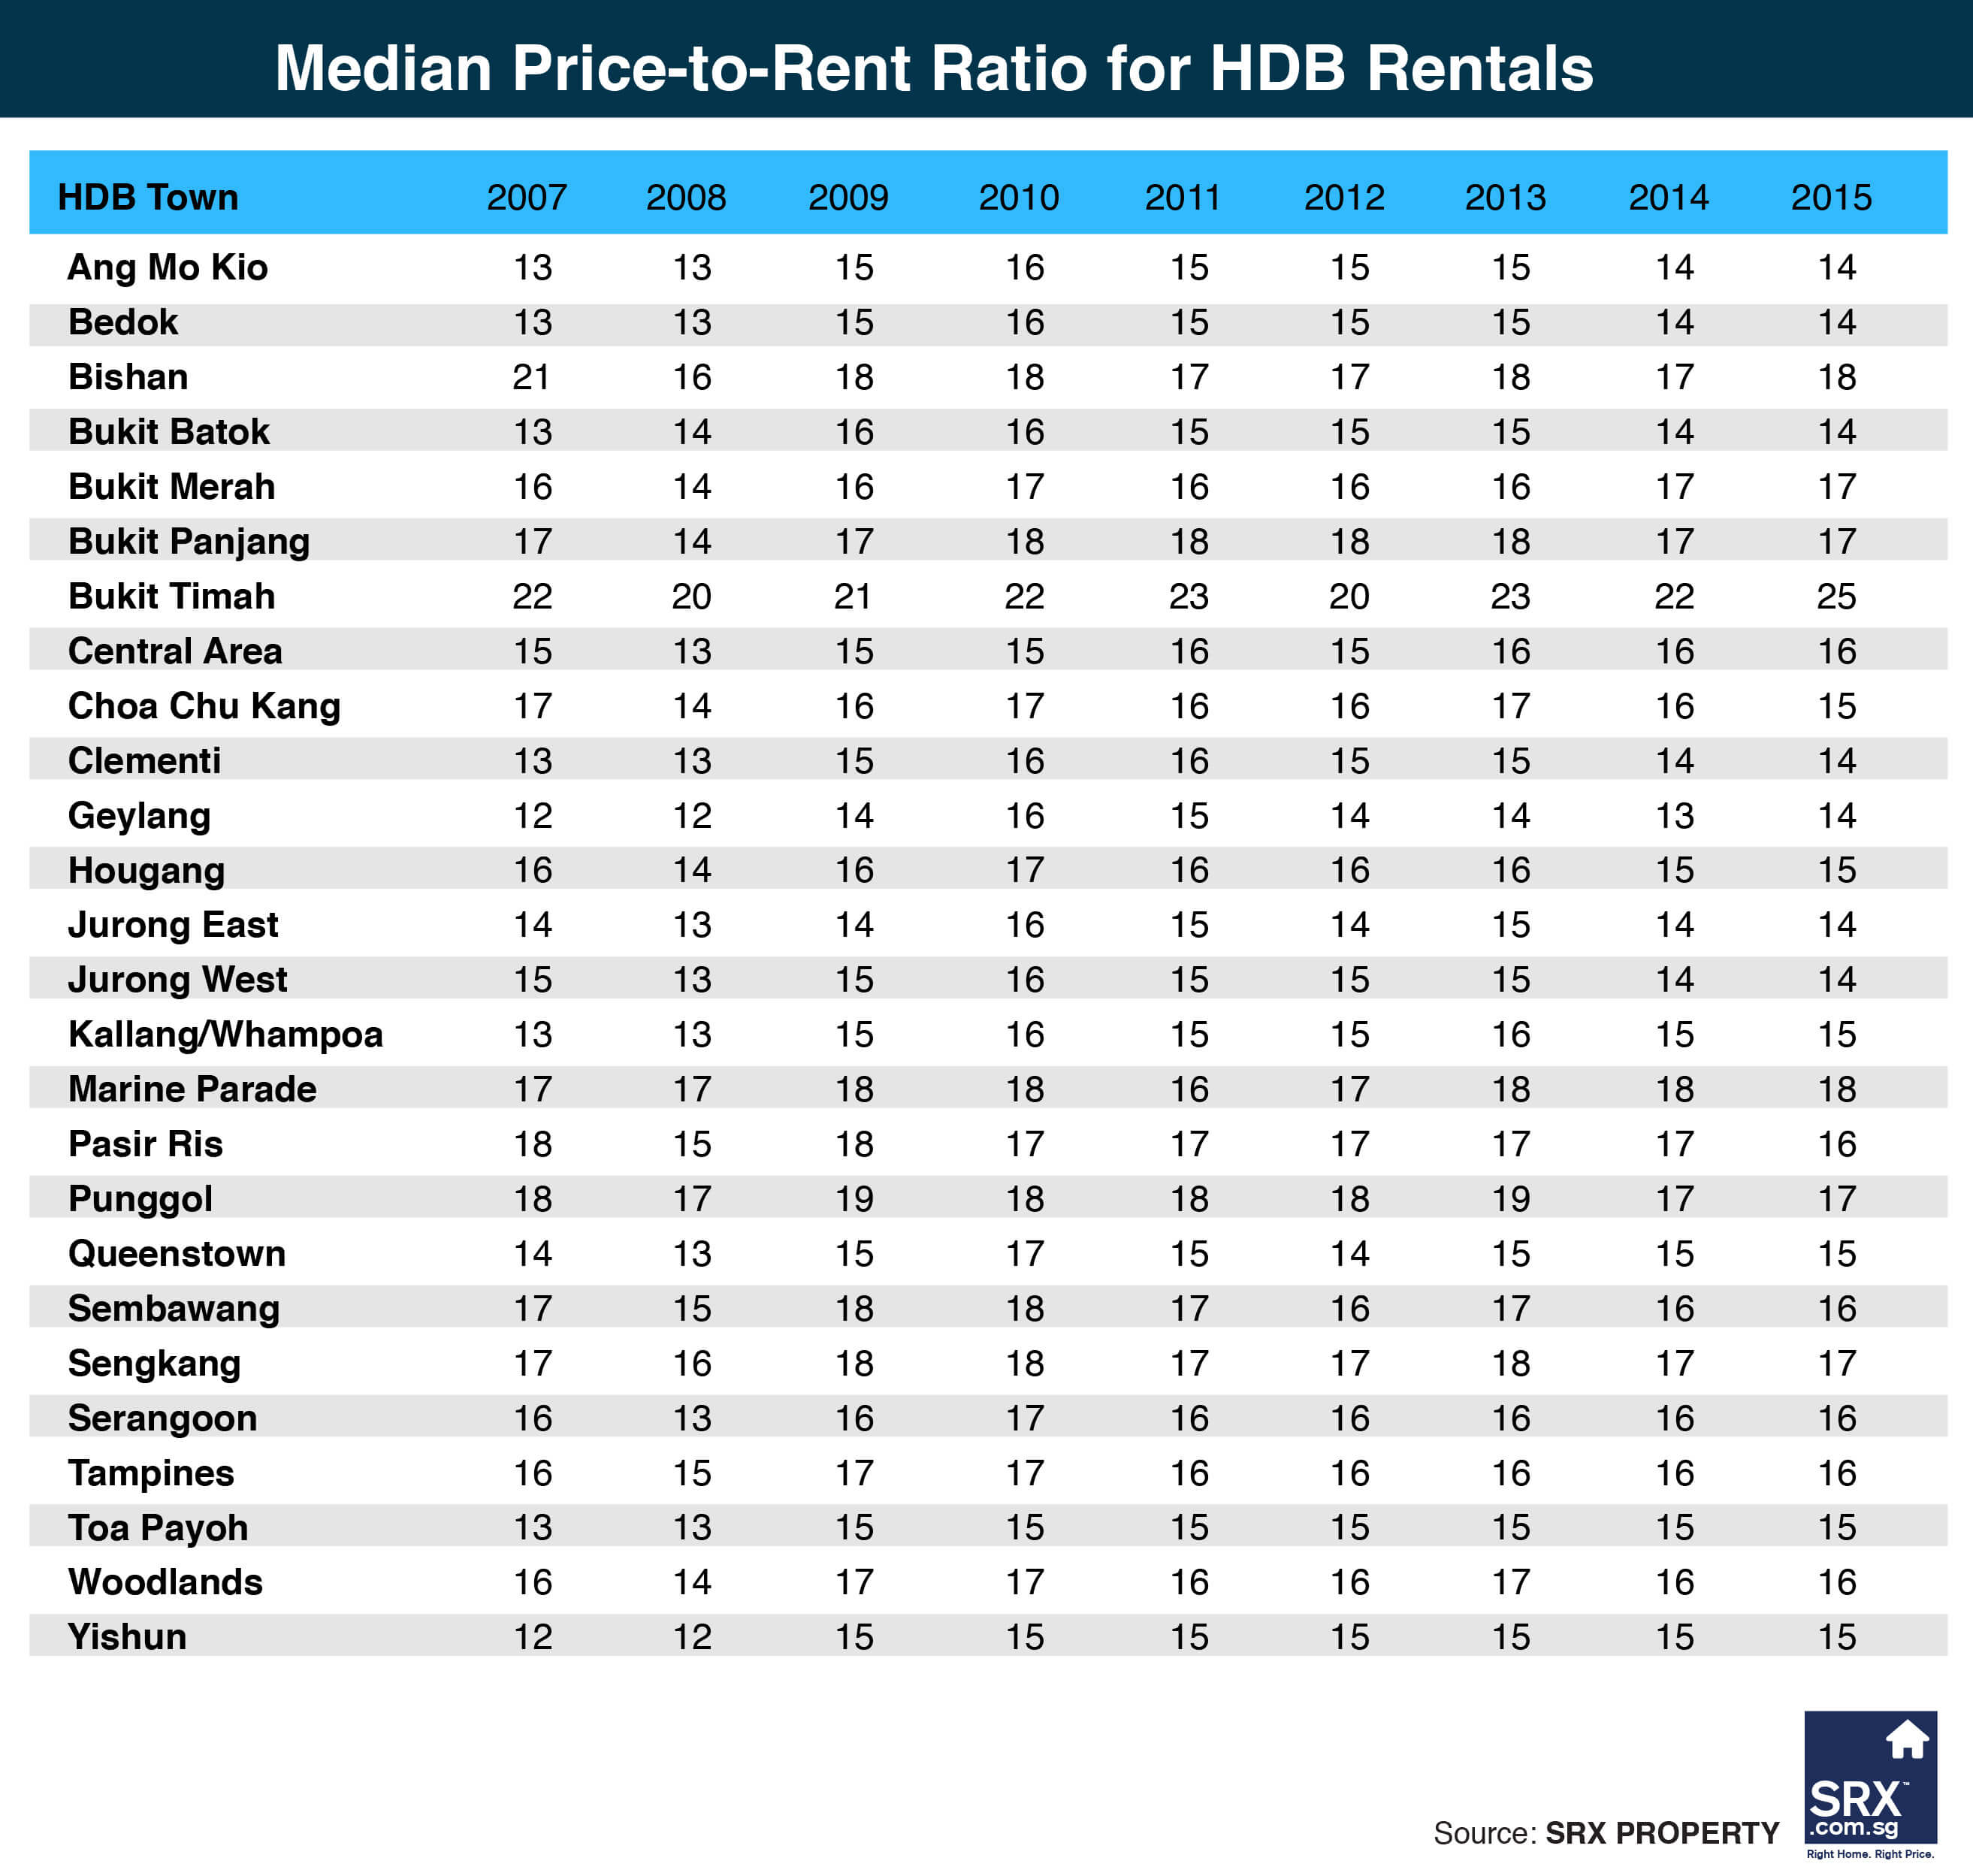 Apartment Rental Prices: Median Price-to-Rent Ratio For HDB Rentals And Private